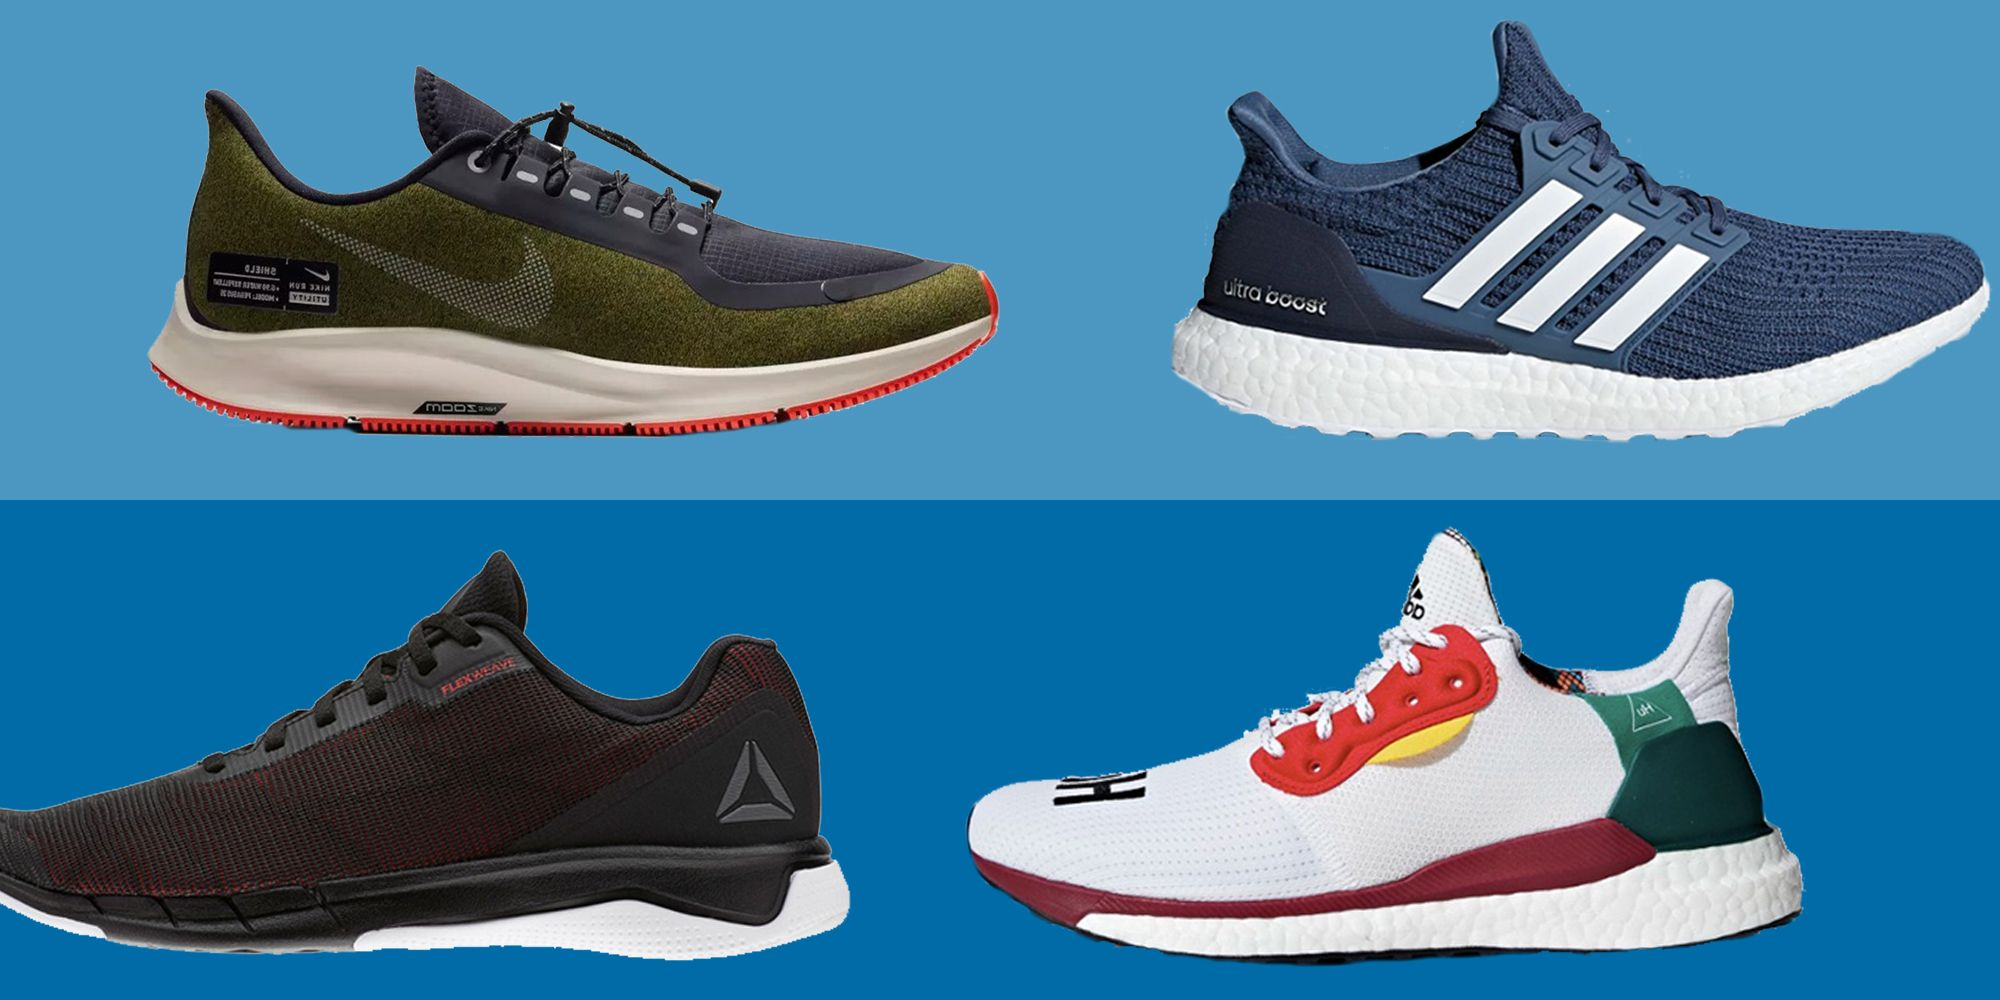 The Best Running Shoes Of 2018